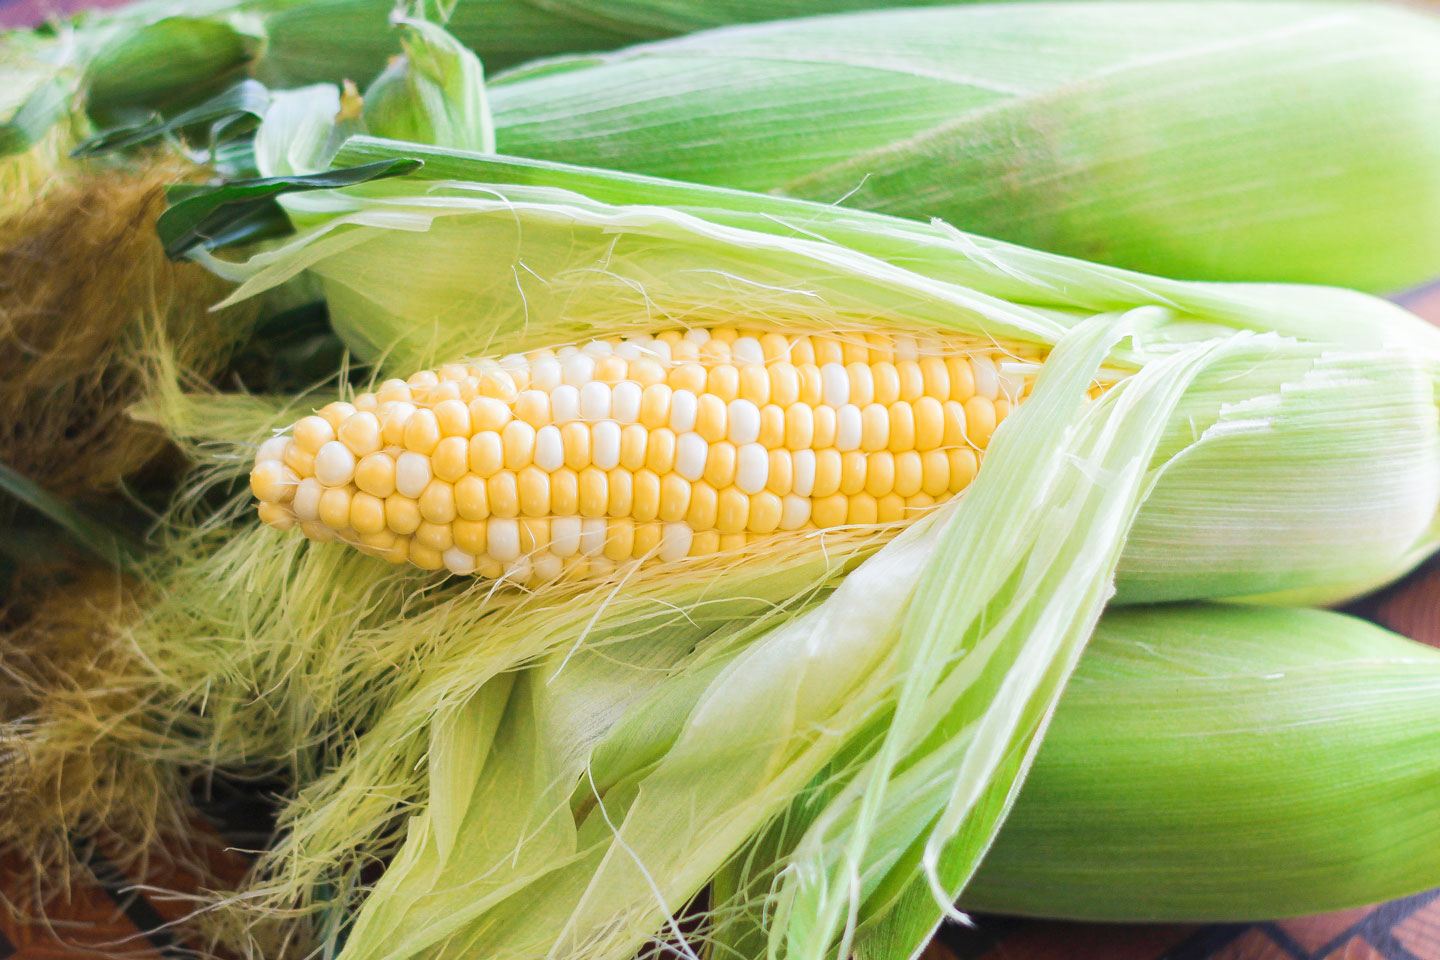 Closeup of a partially husked ear of corn on top of a pile of other corn still in the husks.